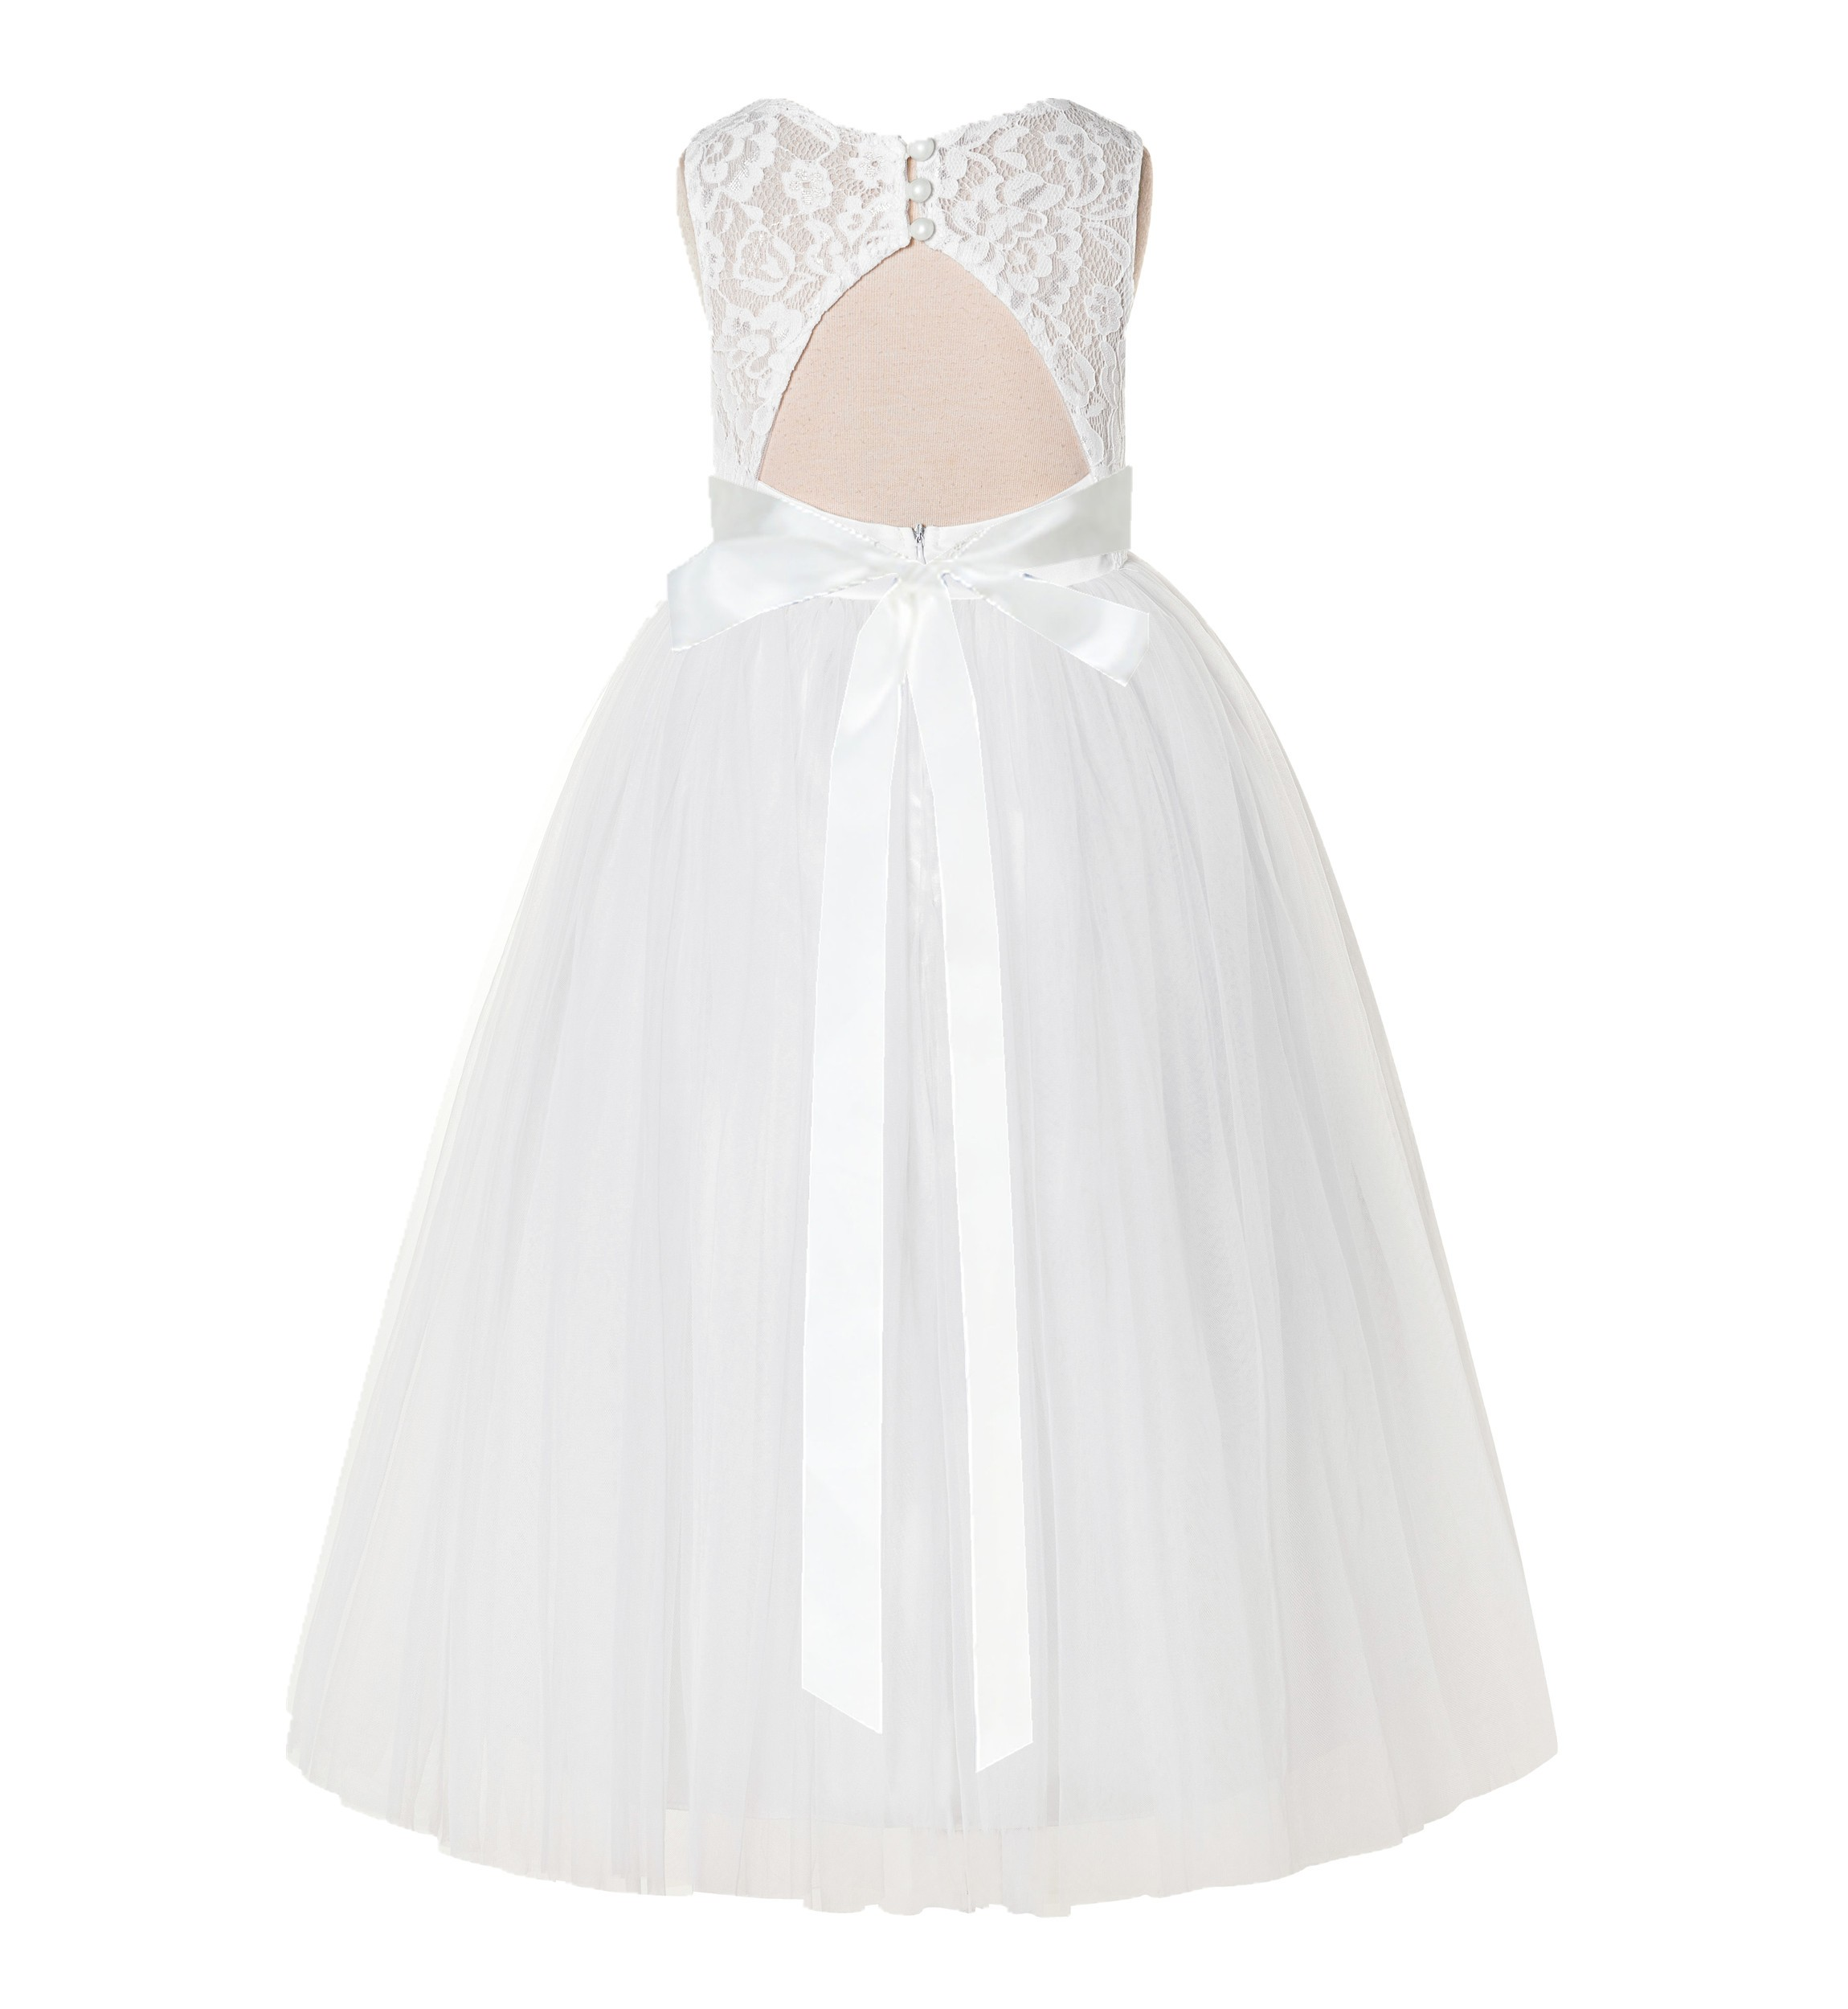 Ivory A-Line Lace Flower Girl Dress 178R3